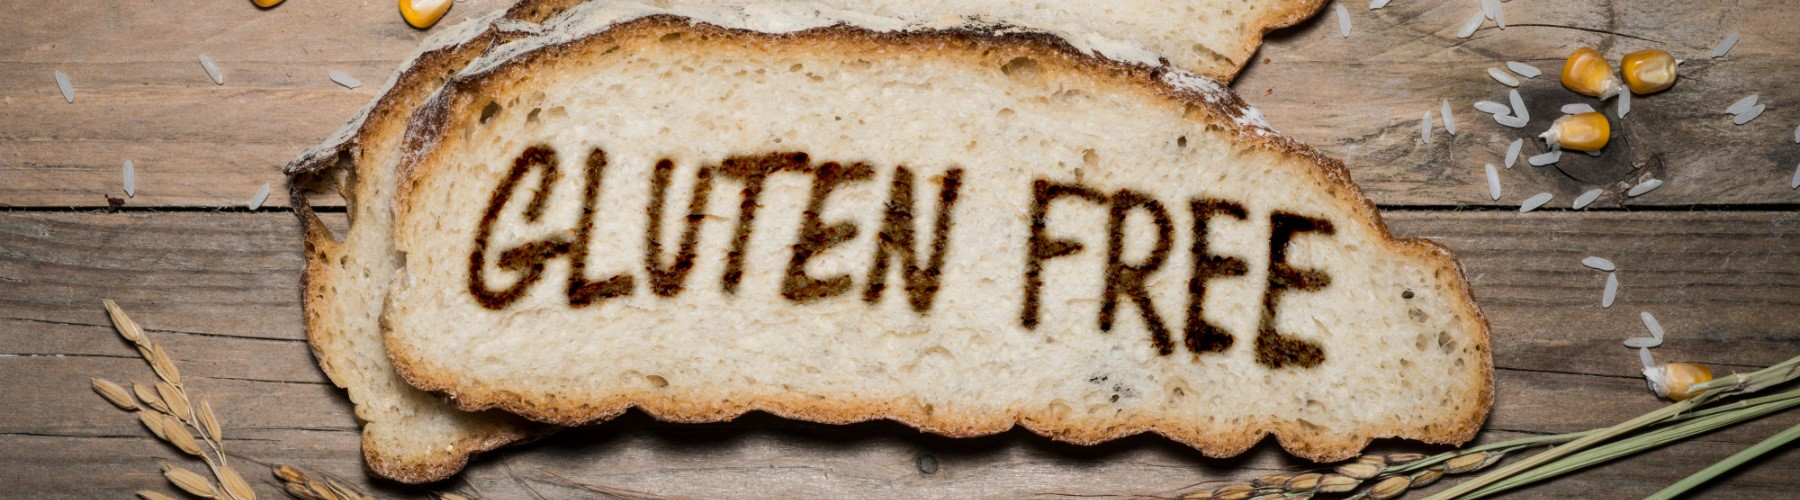 Wholesale Gluten Free Foods - Fine Foods Supplier UK